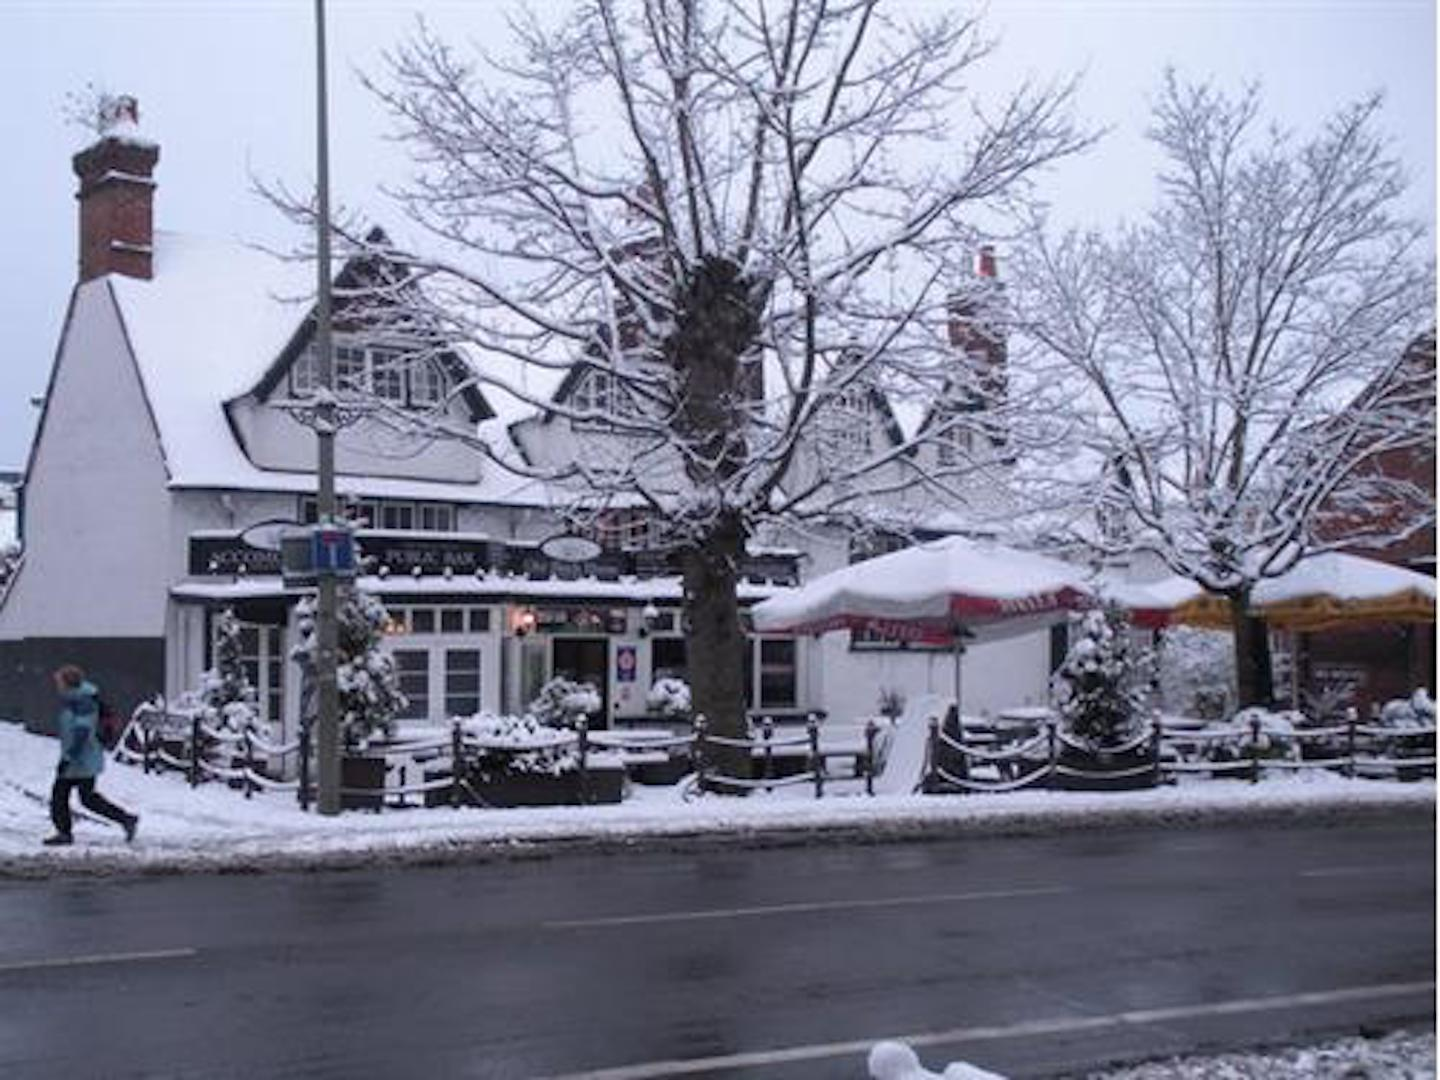 A house covered in snow at The Old Black Horse.